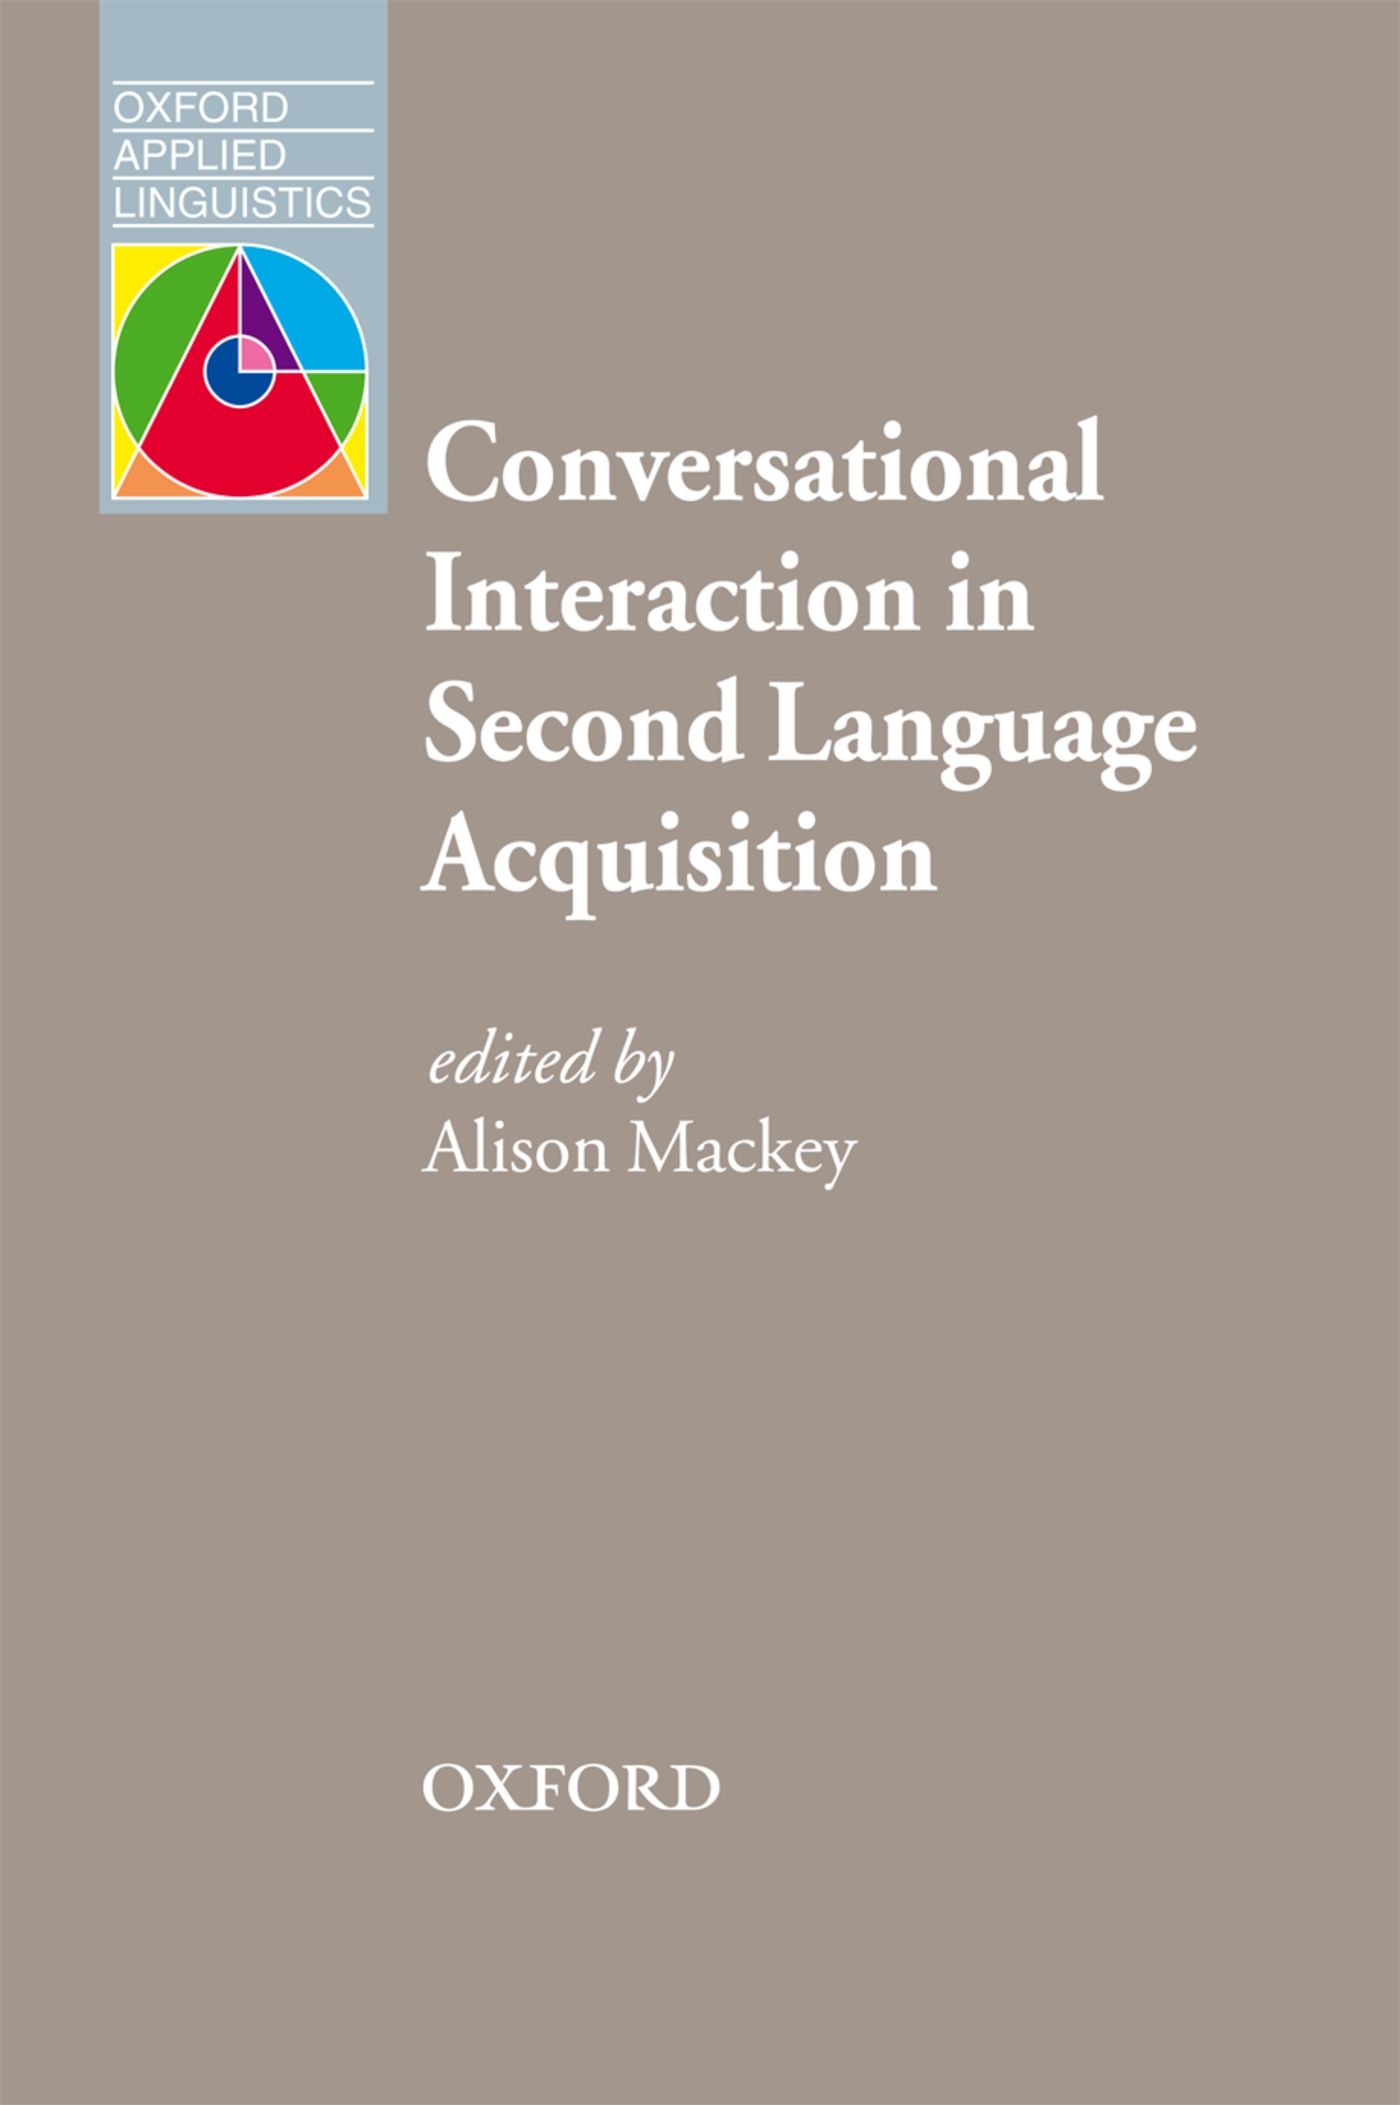 OAL: Conversational Interaction in Second Language Acquisition